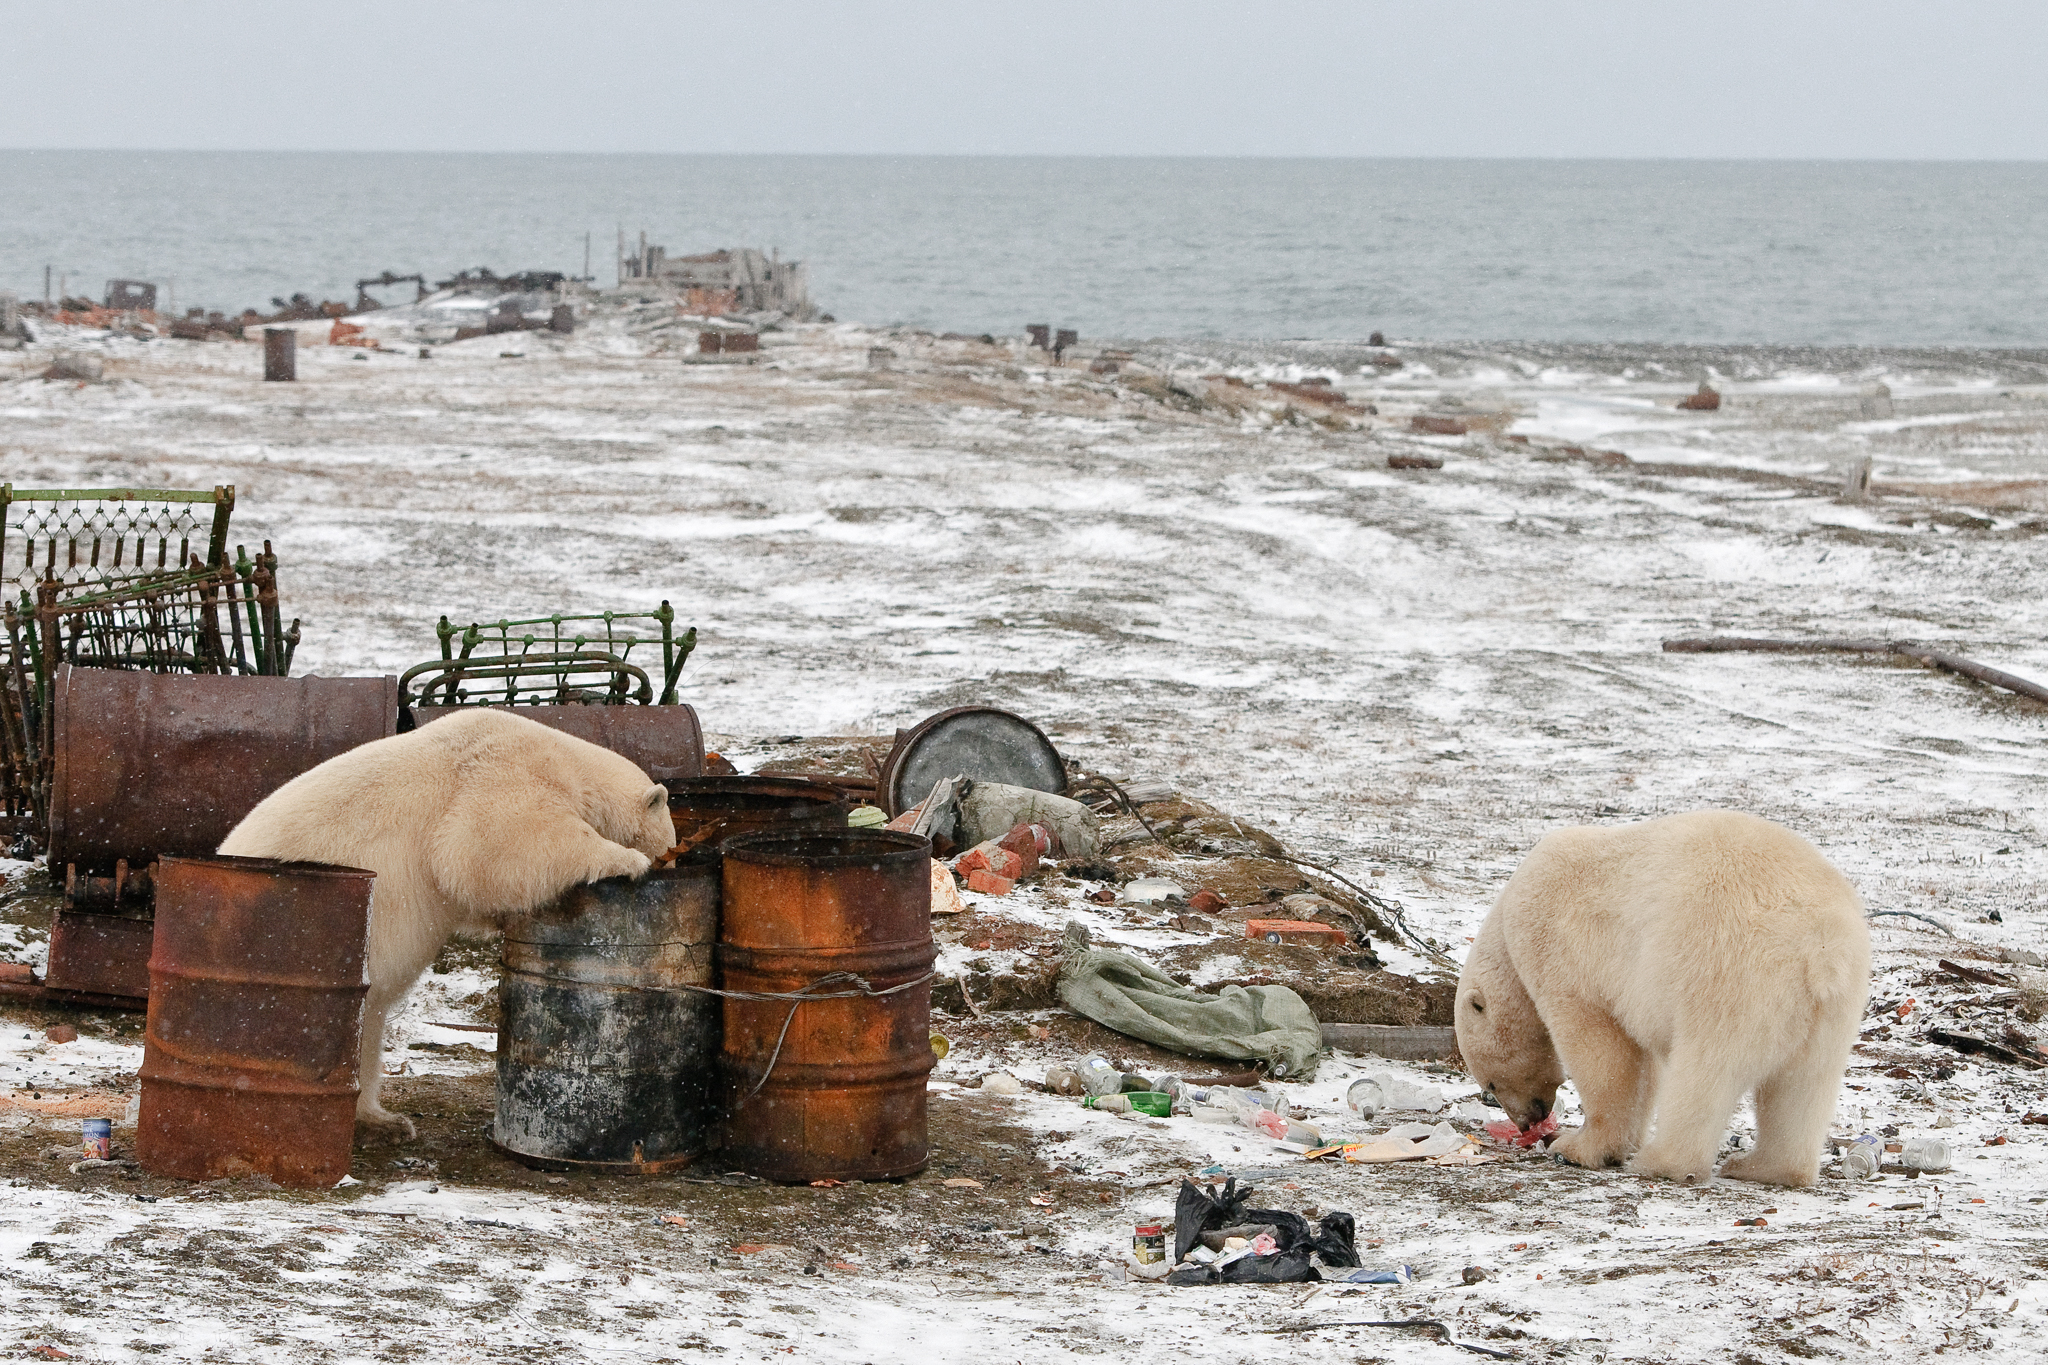 Polar bears dig through discarded barrels on the island, searching for calories wherever they can find them.